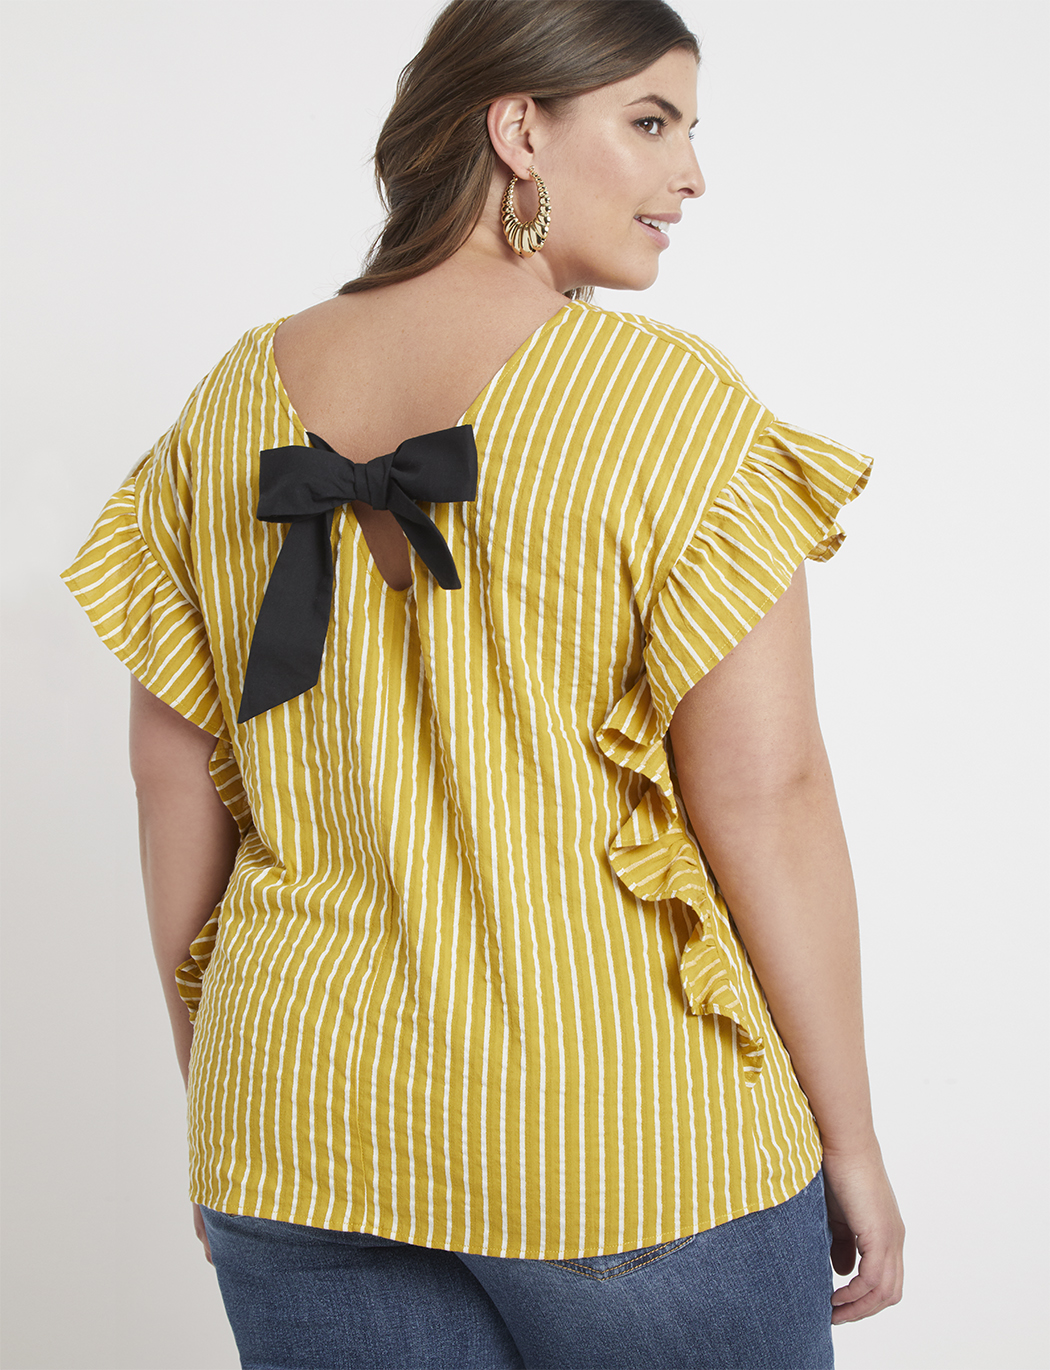 1be7156c497359 Bow Back Stripe Top | Women's Plus Size Tops | ELOQUII